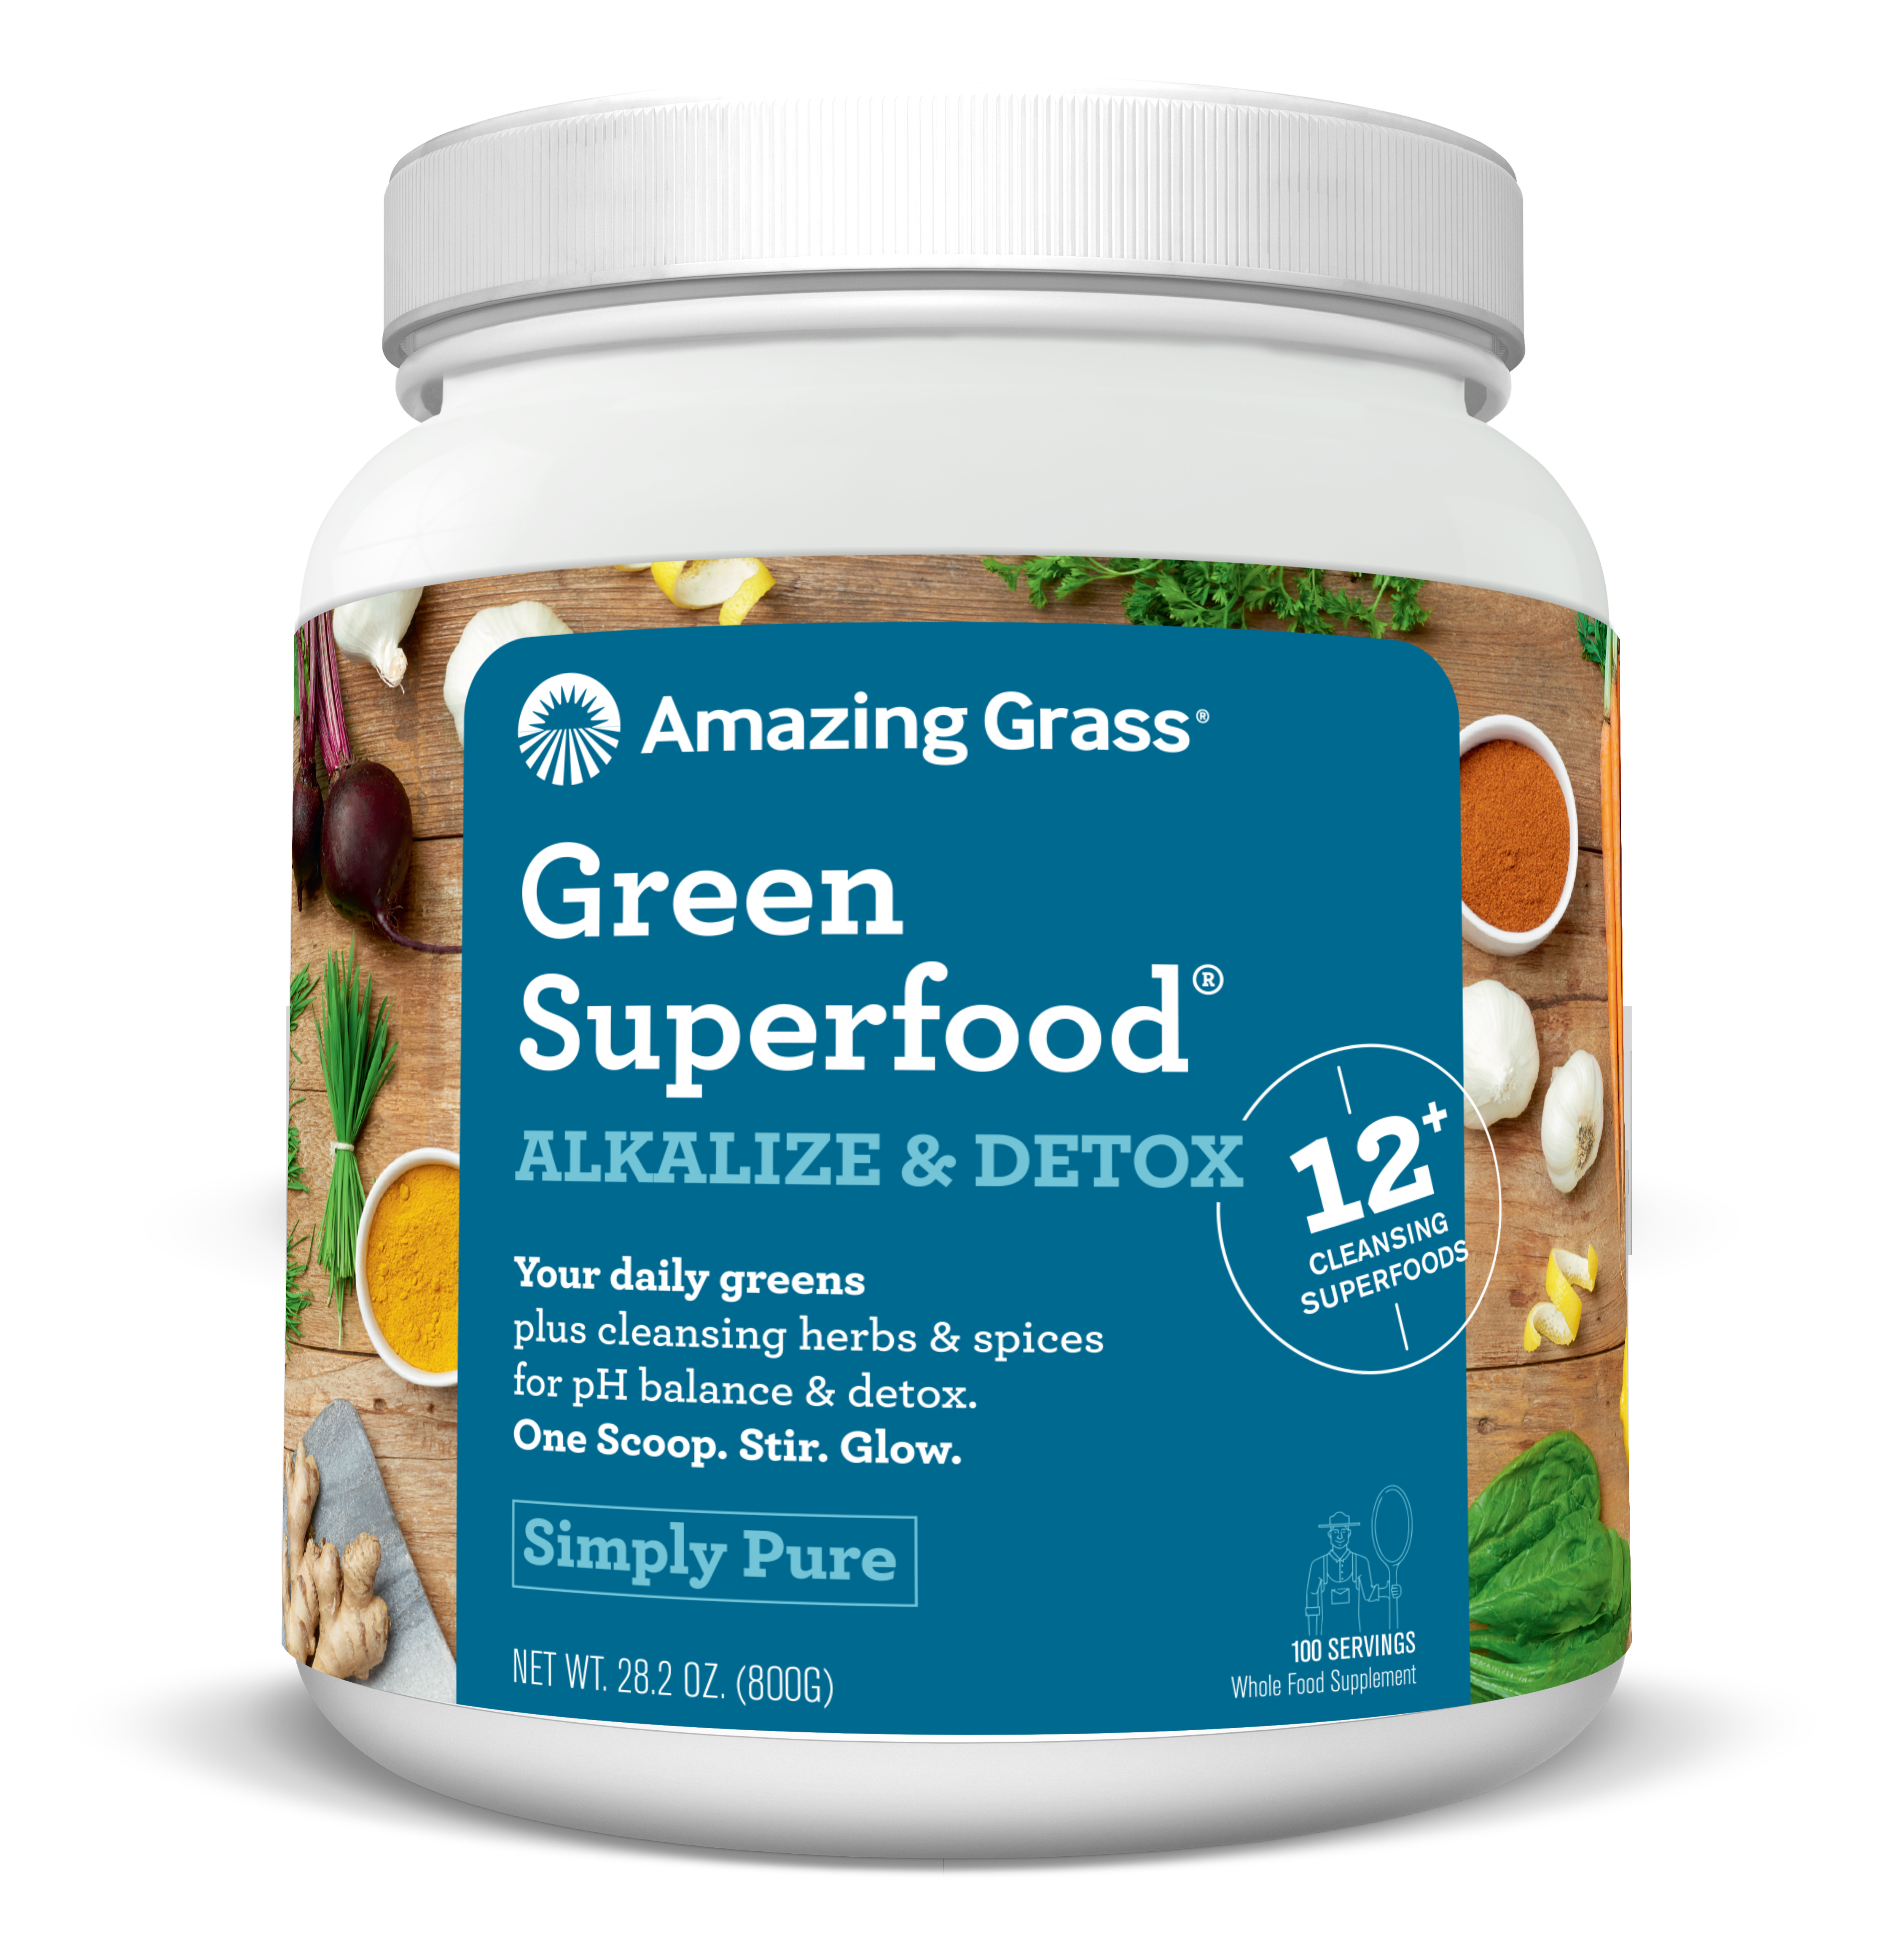 Amazing Grass Alkalize & Detox Green Superfood Powder, Simply Pure, 100 Servings